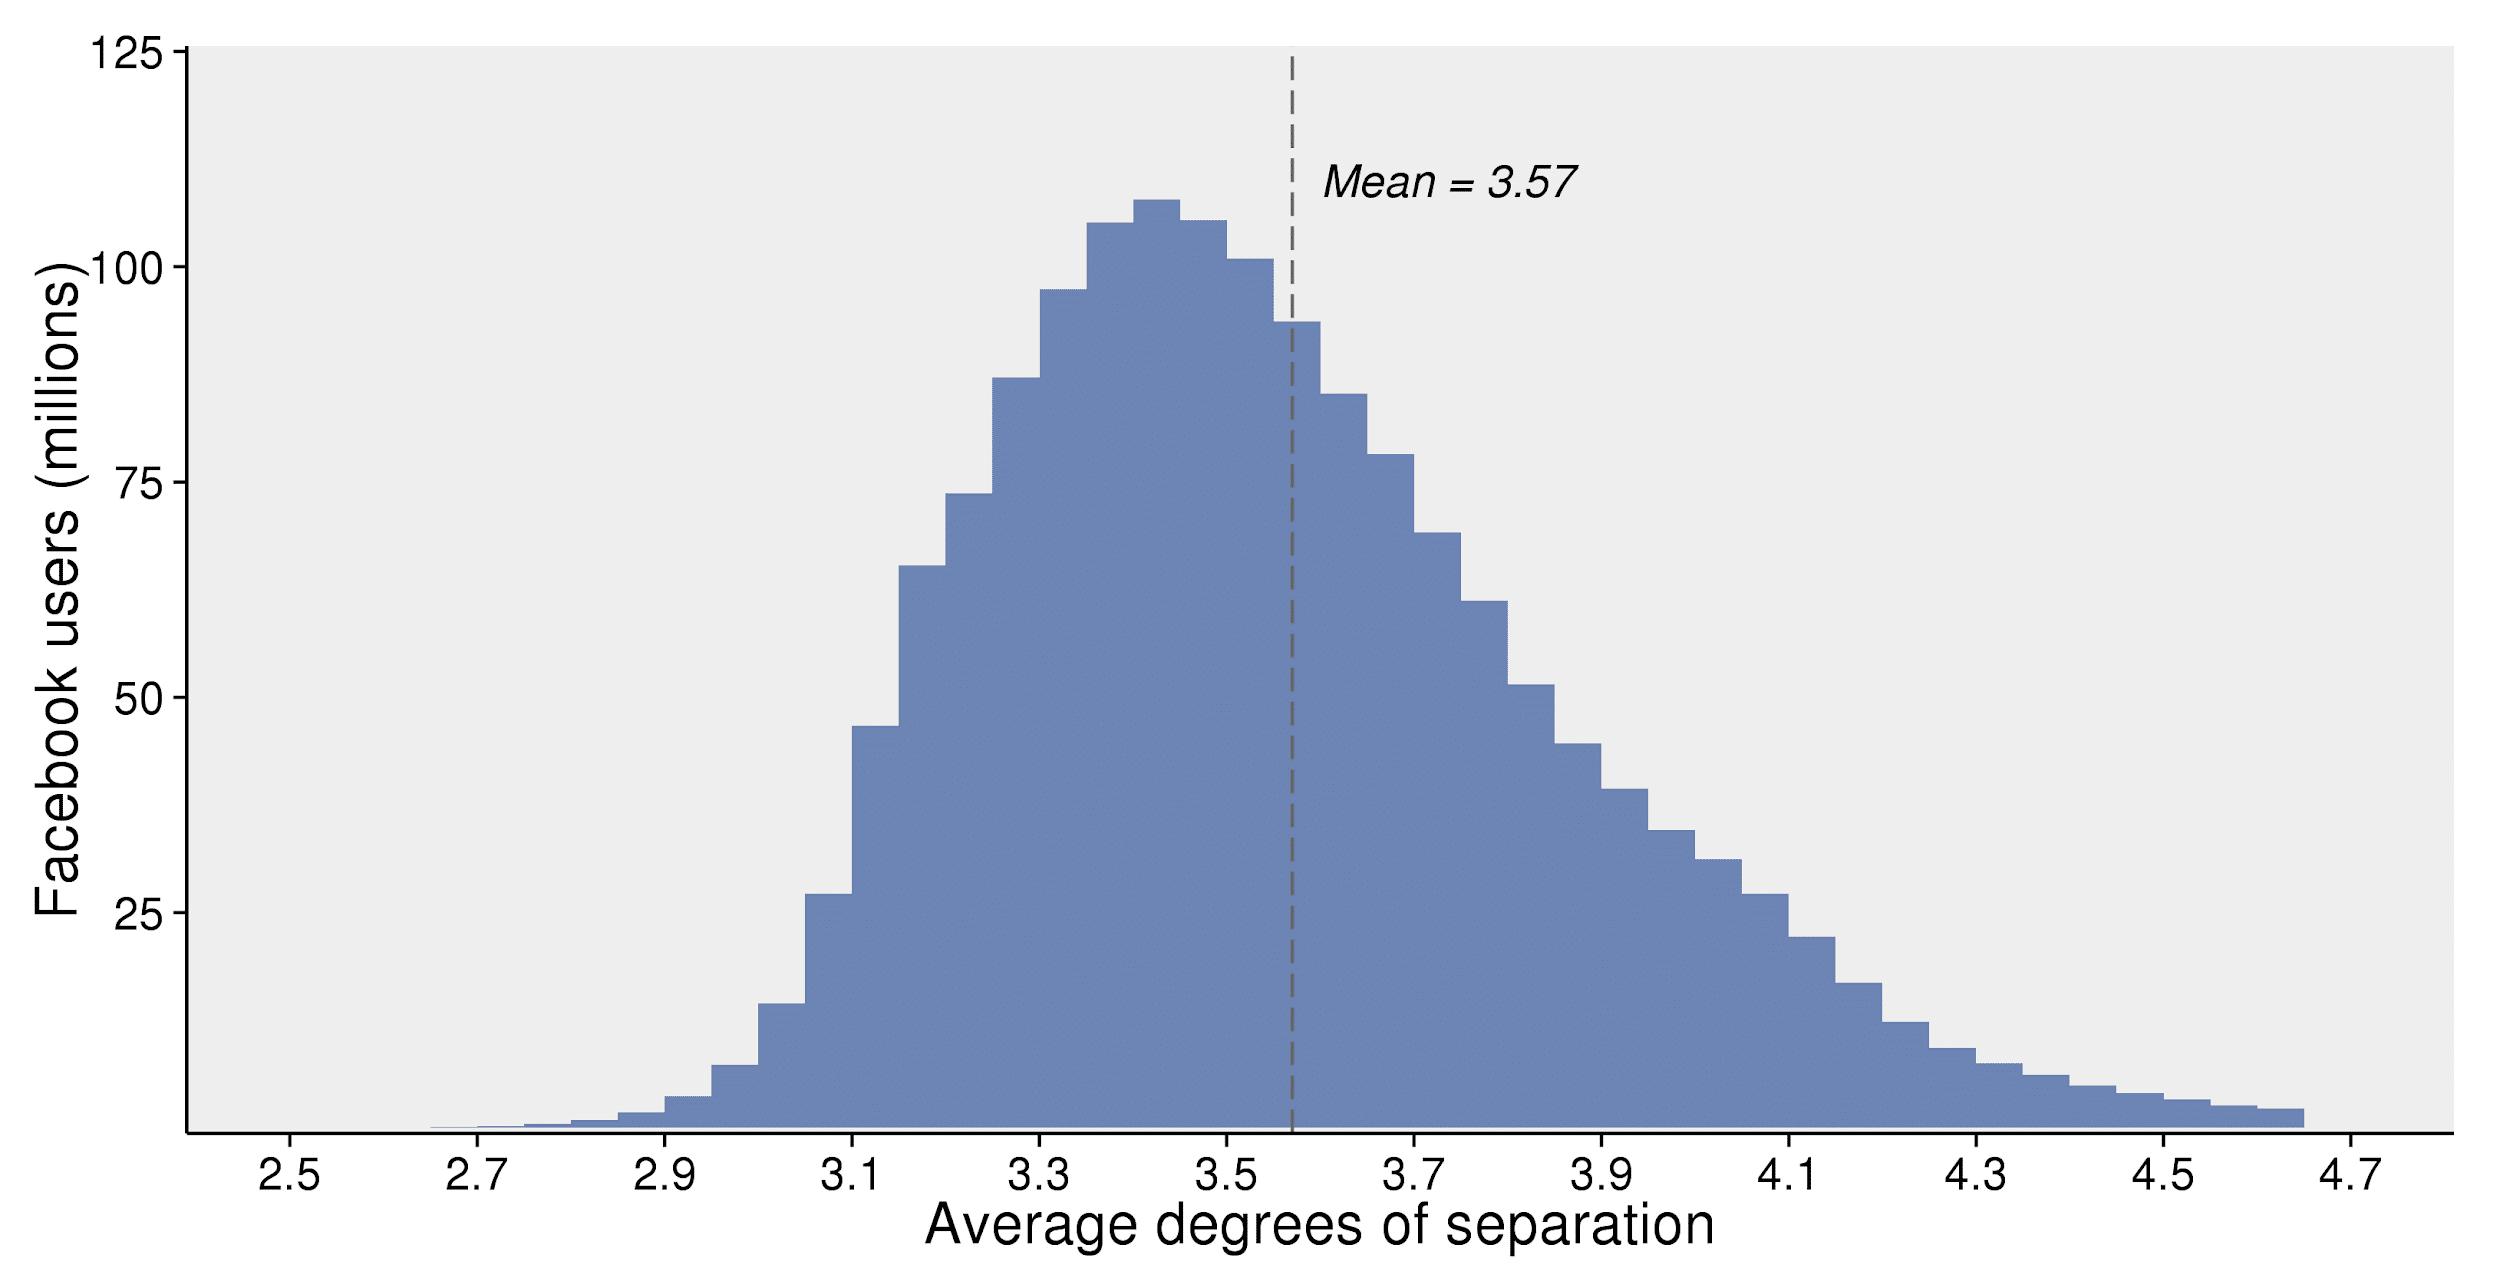 Facebook average degrees of separation